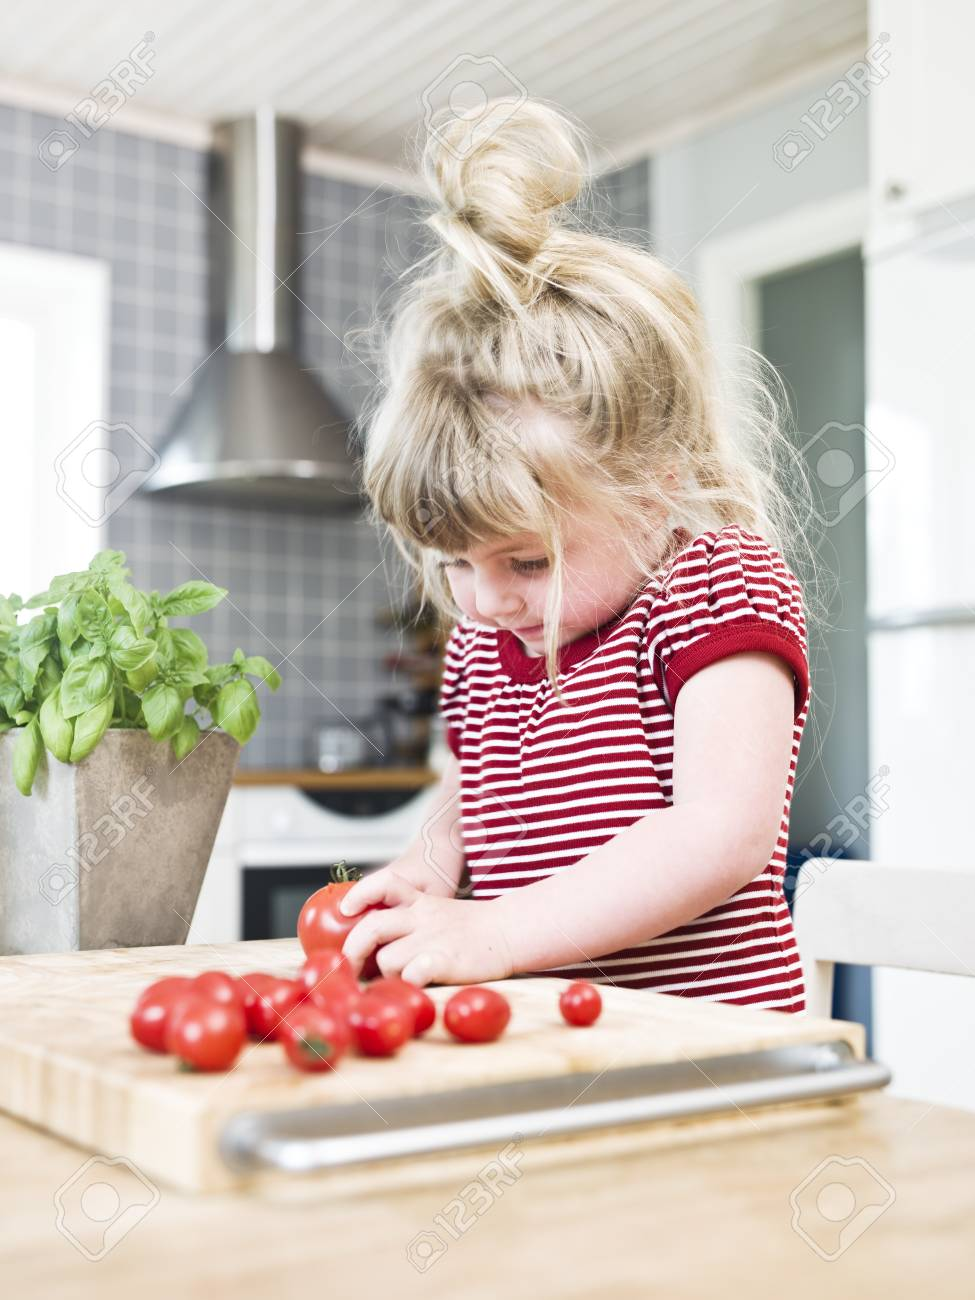 Young girl cutting tomatoes in the kitchen Stock Photo - 7199542